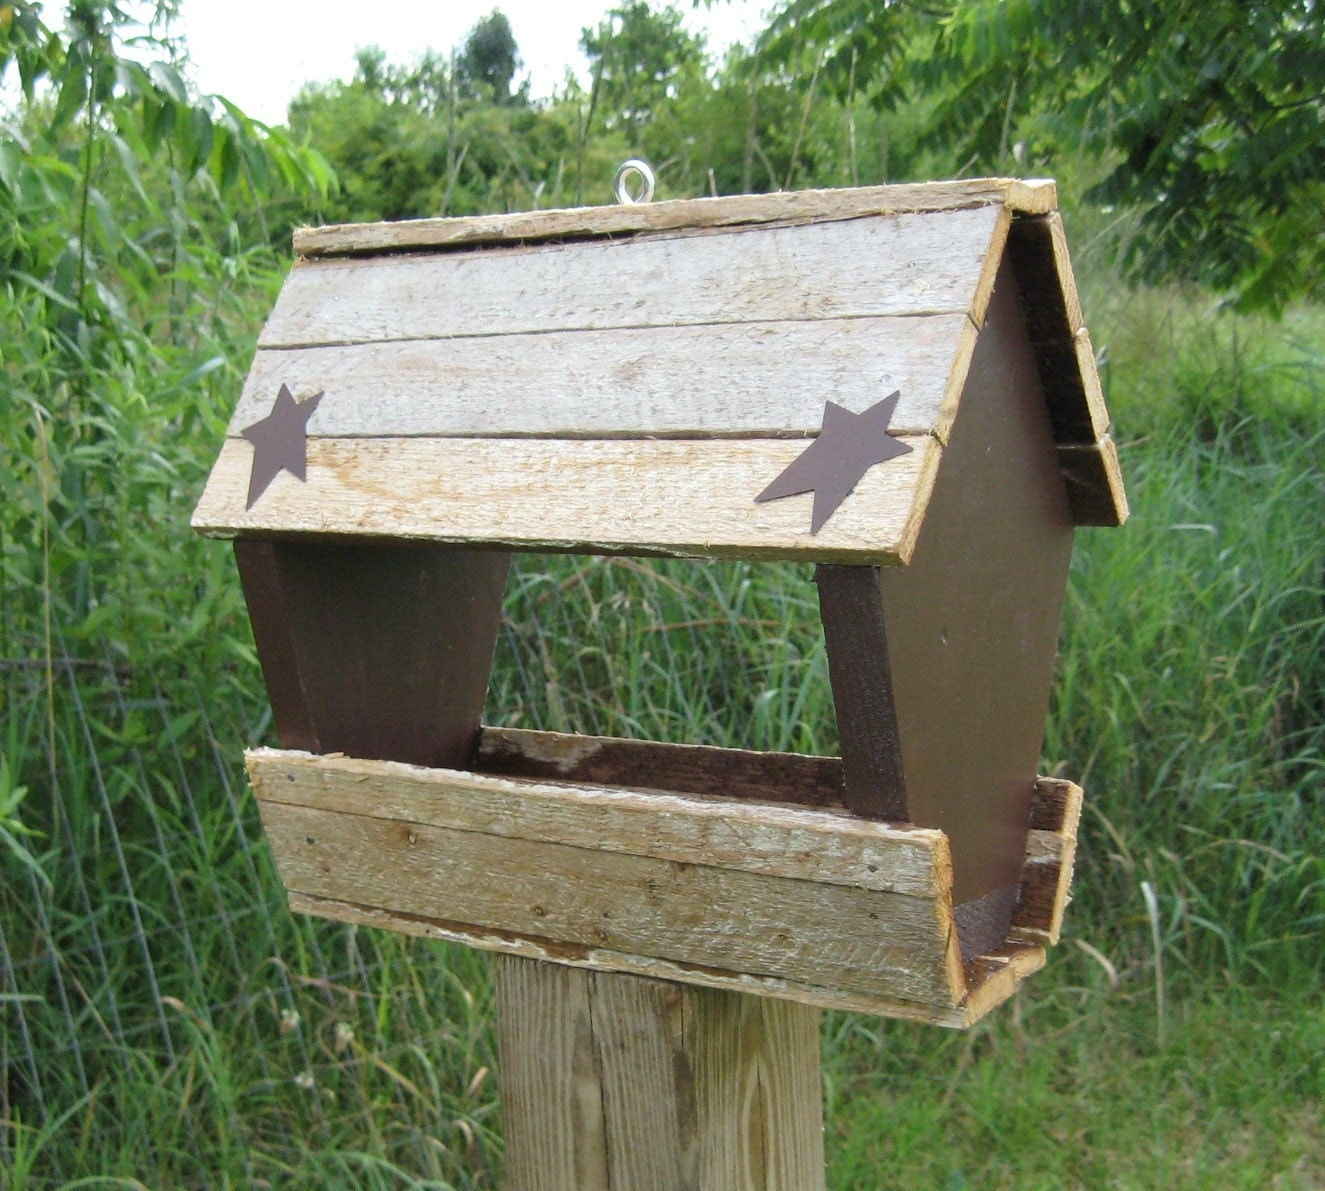 Hand made rustic bird feeder from reclaimed wood